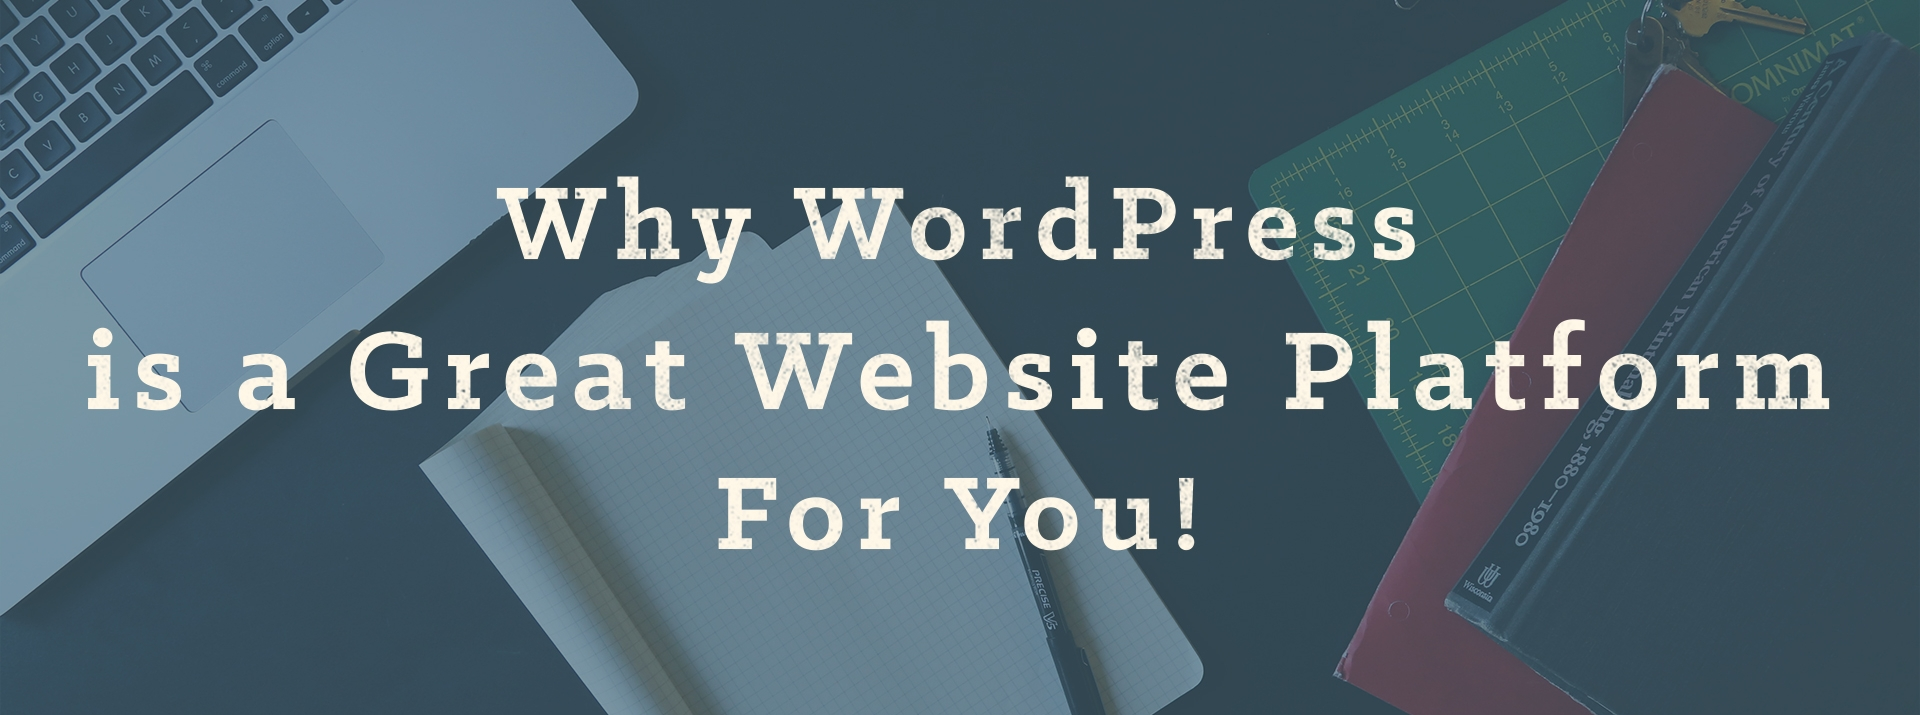 Why WordPress Is A Great Website Platform For You!